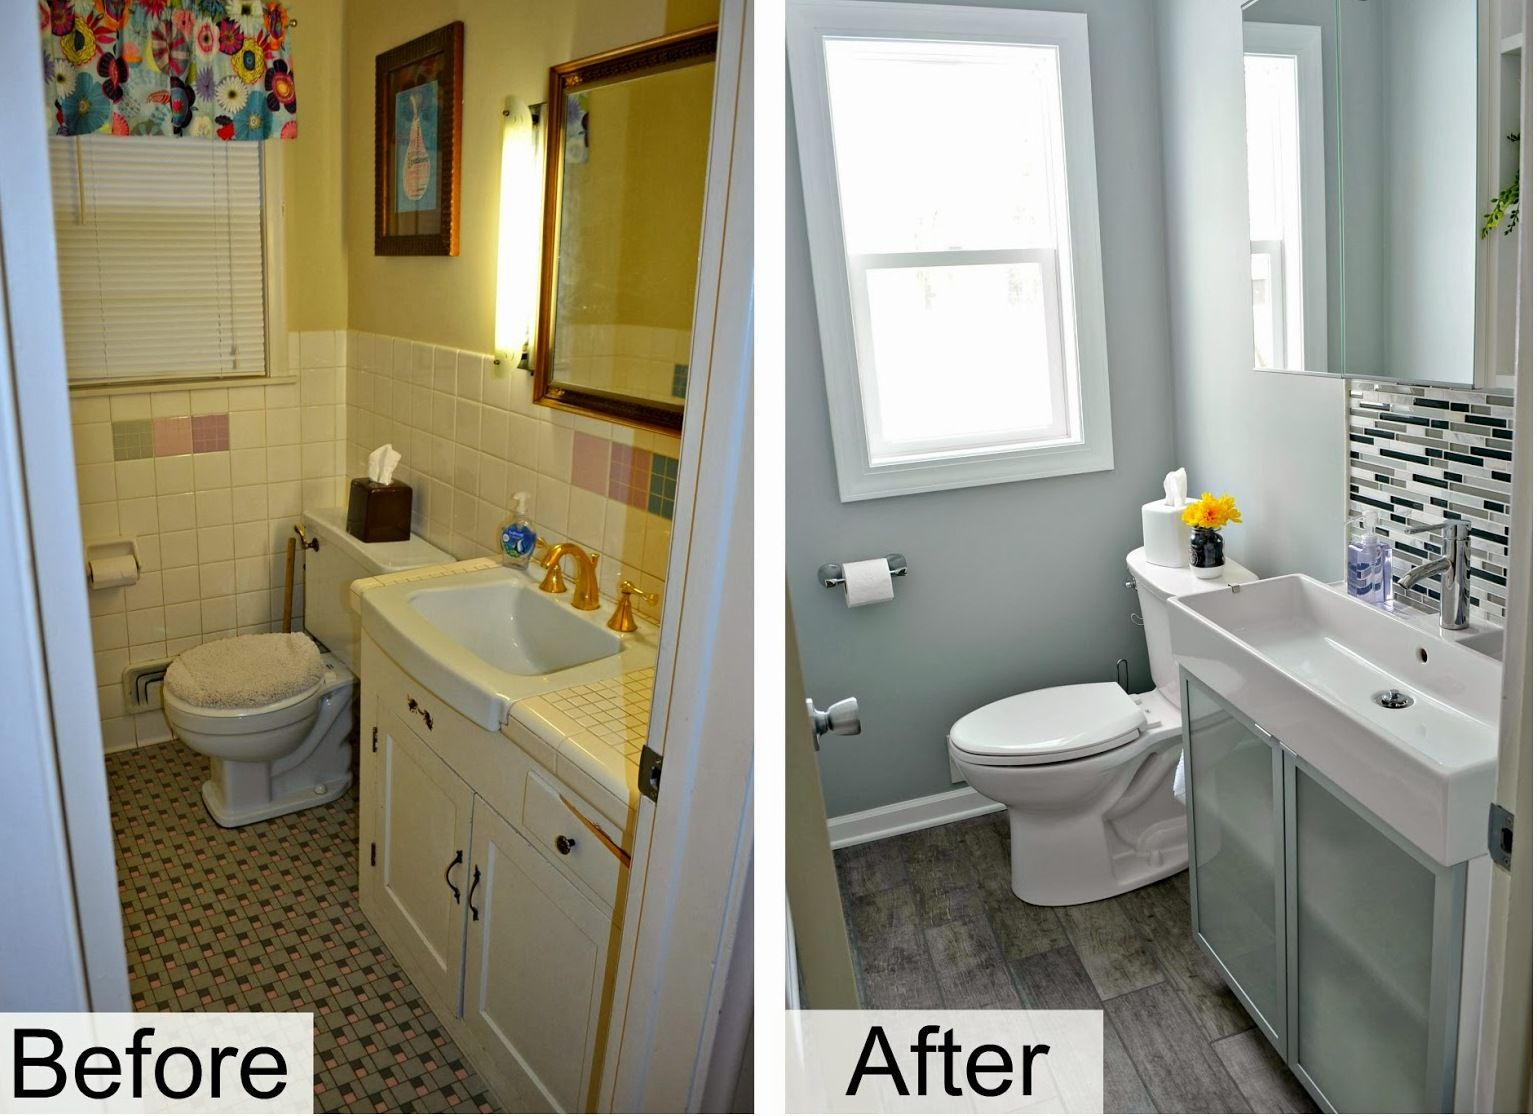 Diy Bathroom Remodel Ideas For Average People Pinterest Diy - Cheap diy bathroom remodel ideas